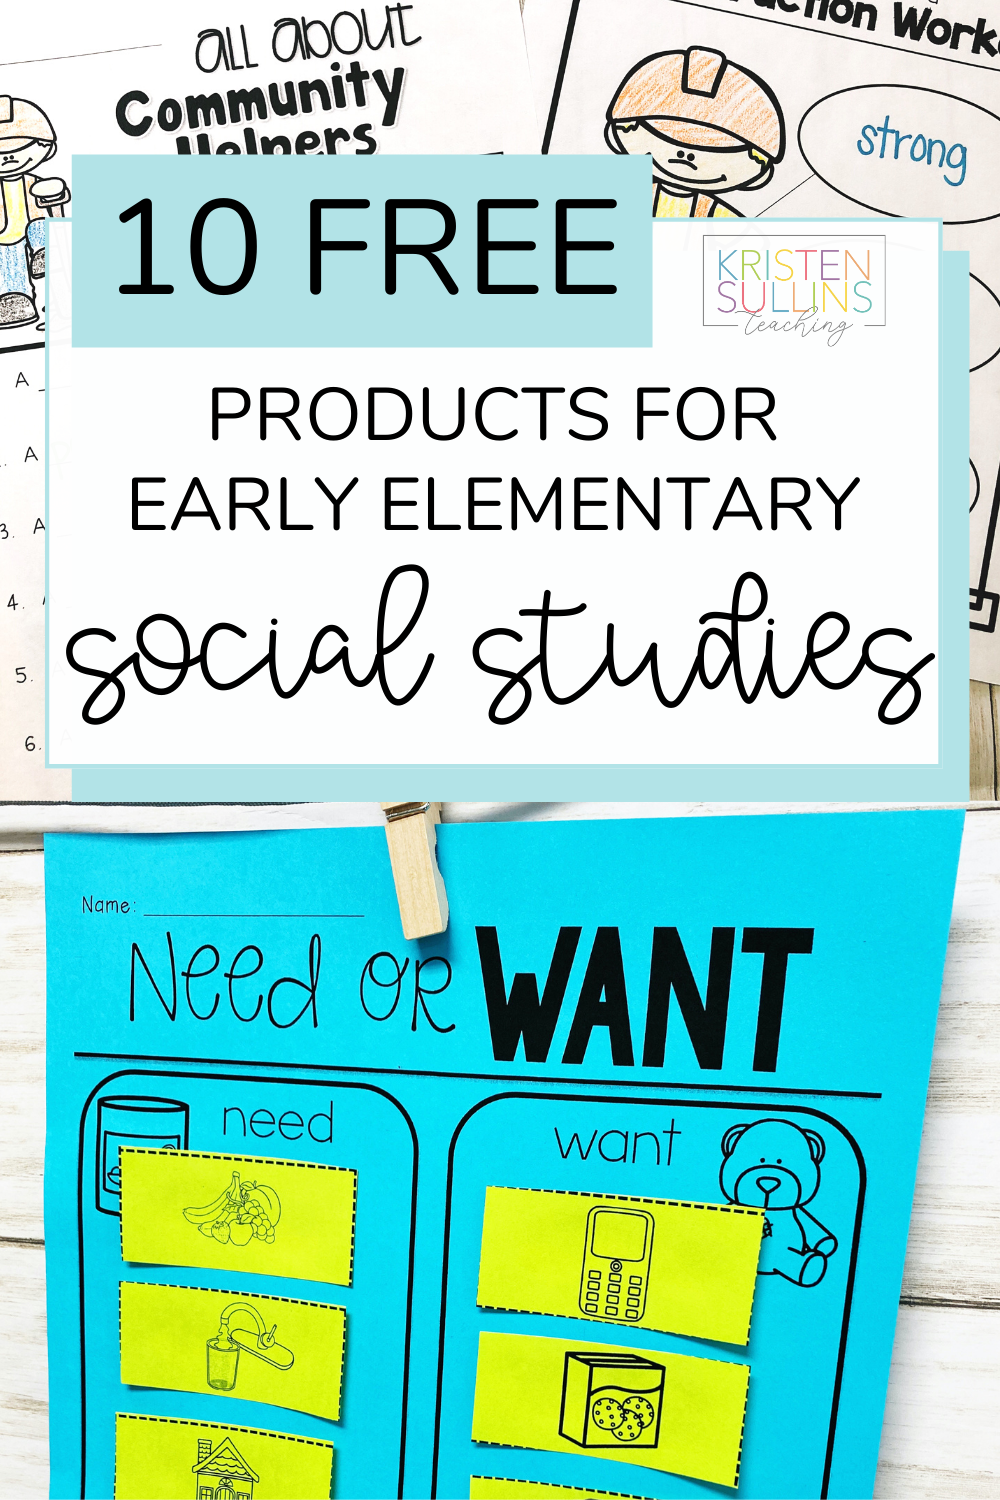 Free Social Studies Activities For Early Elementary In 2021 Social Studies Elementary Kindergarten Social Studies Social Studies Activities